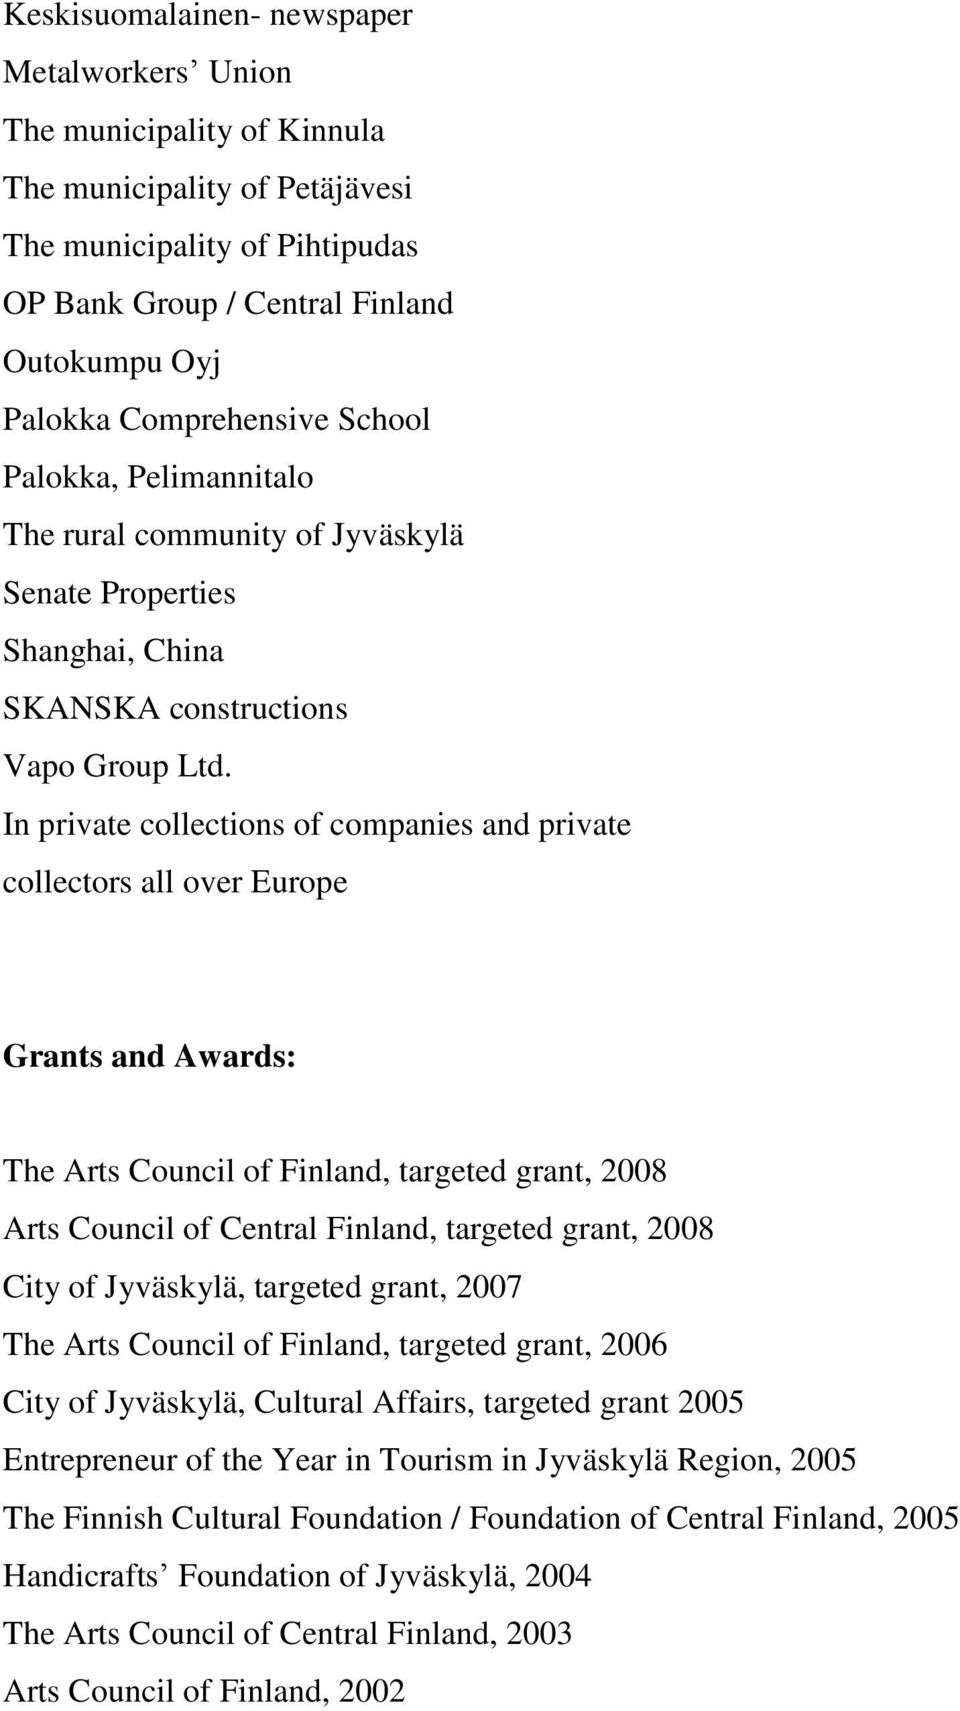 In private collections of companies and private collectors all over Europe Grants and Awards: The Arts Council of Finland, targeted grant, 2008 Arts Council of Central Finland, targeted grant, 2008